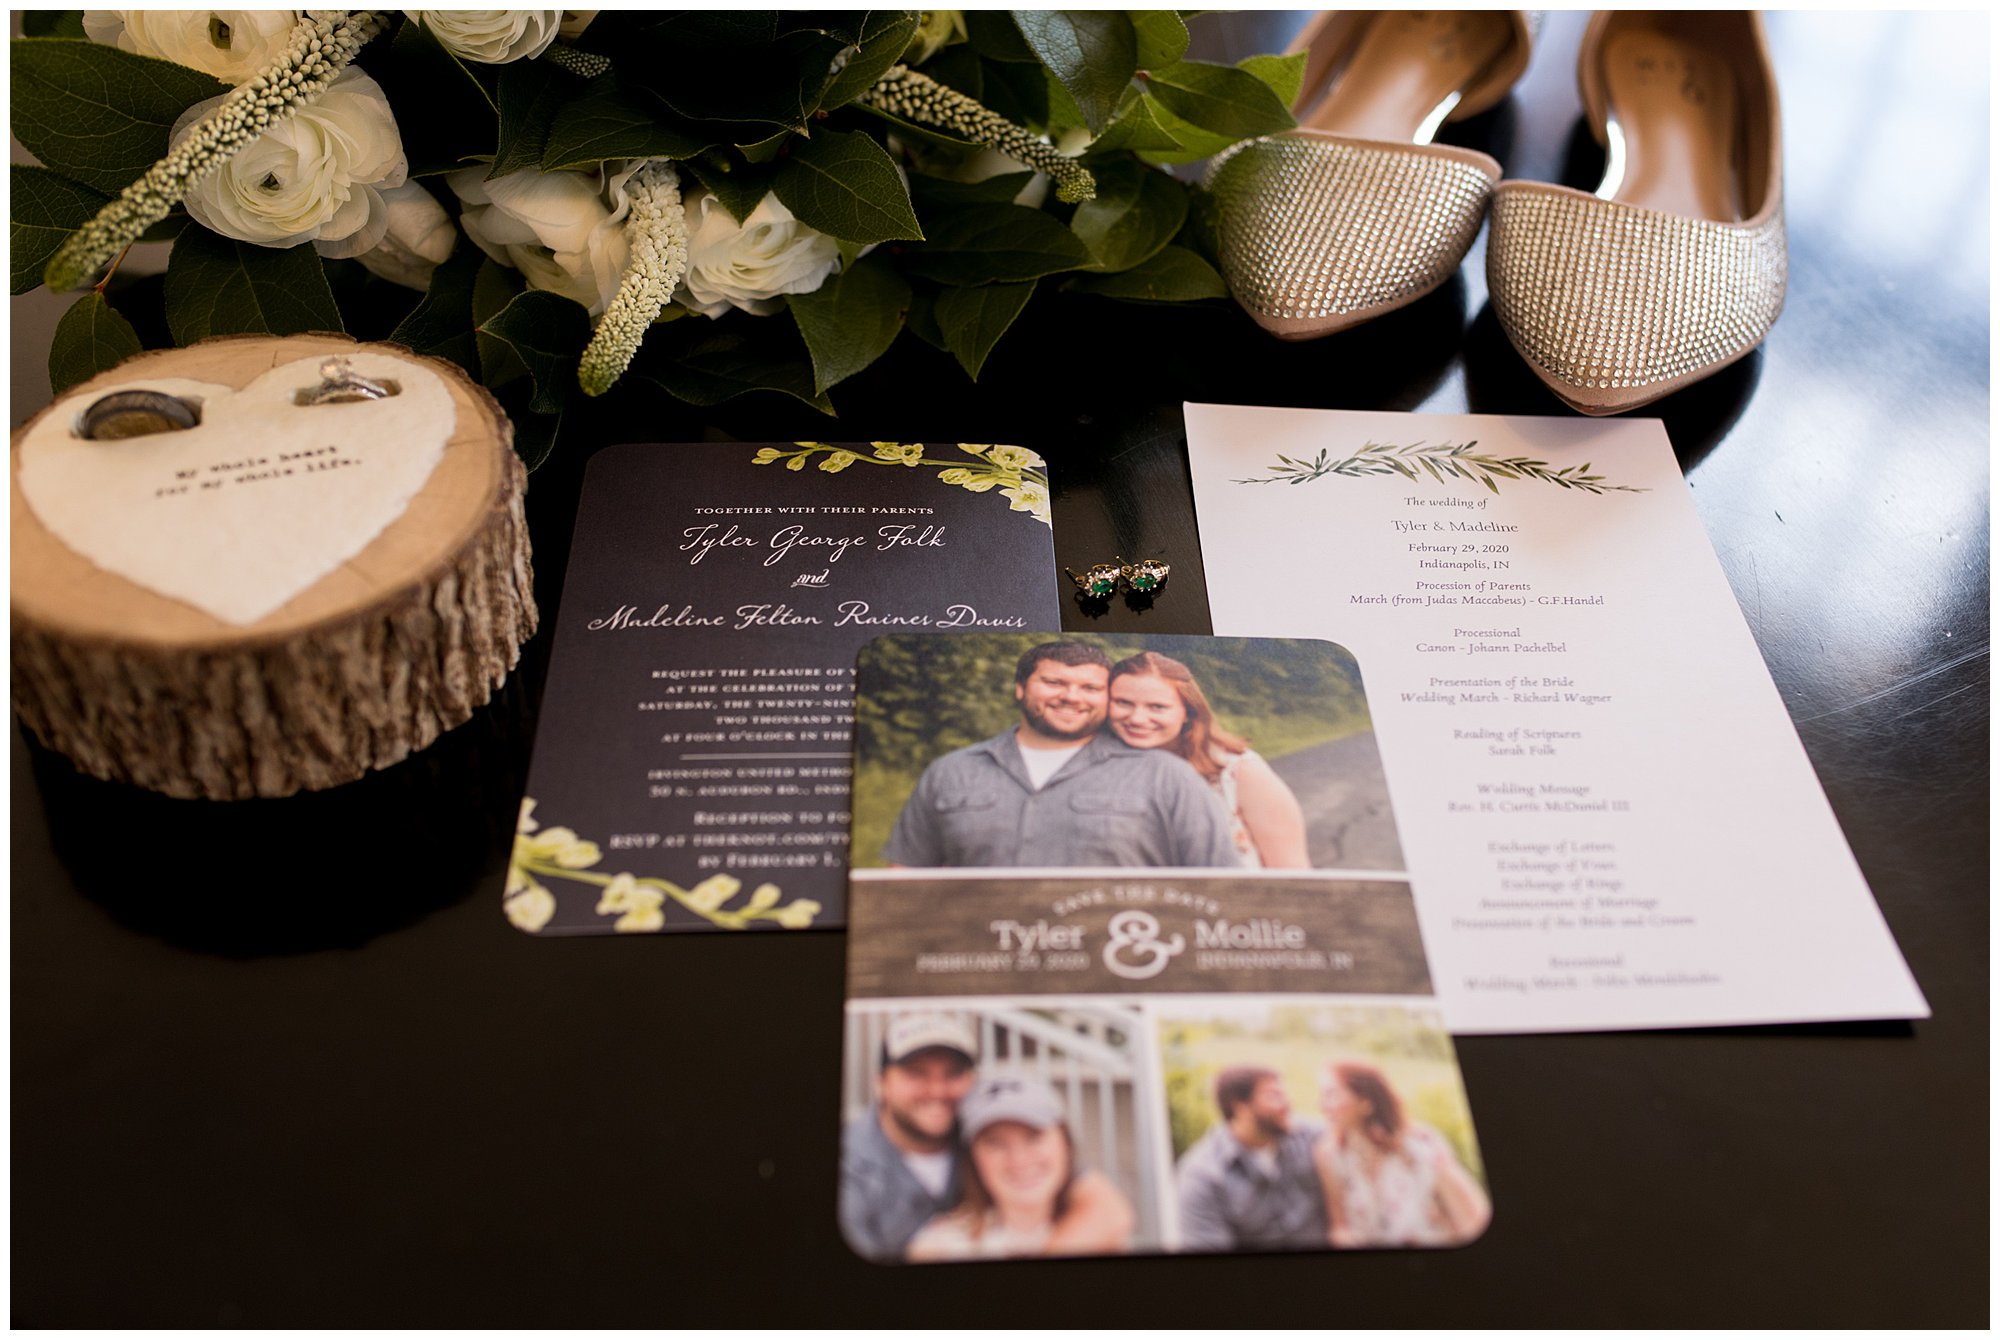 wedding invitation suite with bride and groom rings and bridal bouquet at Indianapolis wedding